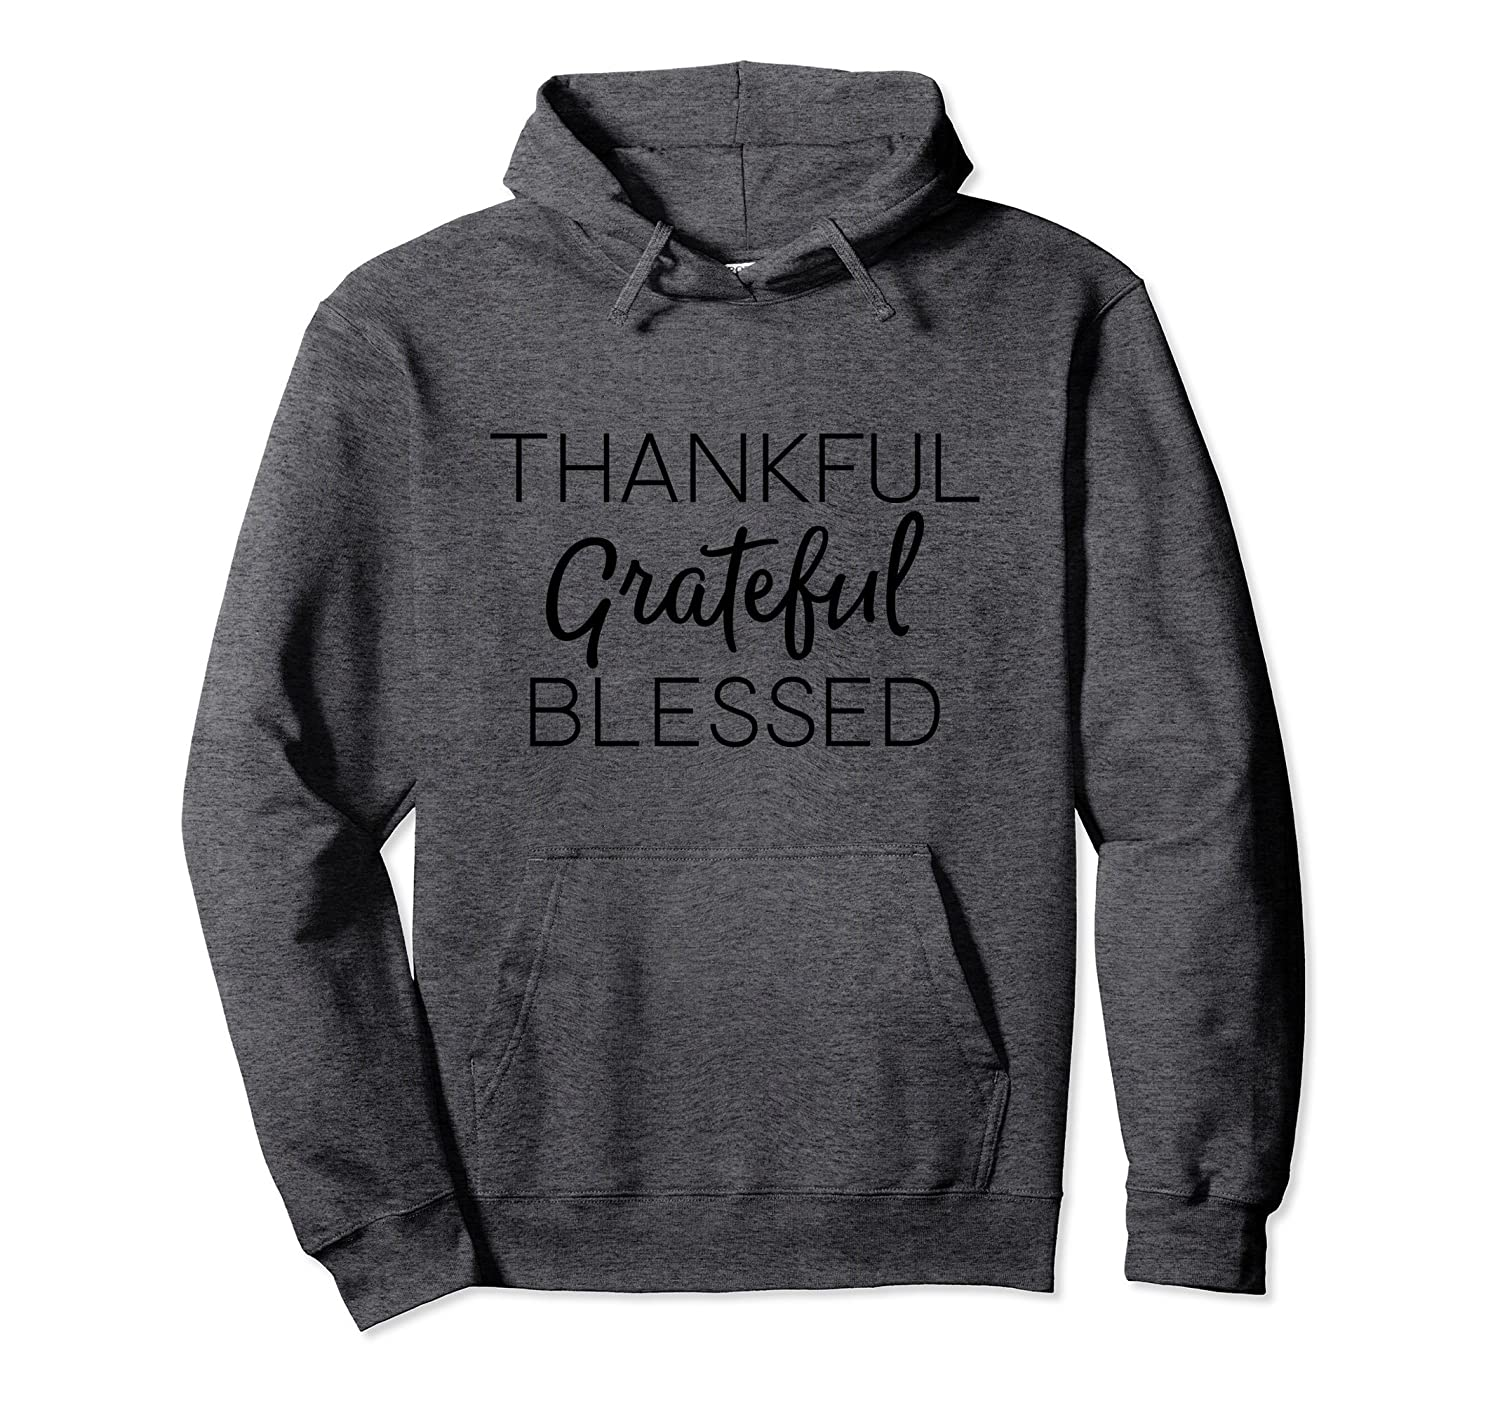 Thankful Grateful Blessed  Cool Hoodie & Gift S010070-Bawle